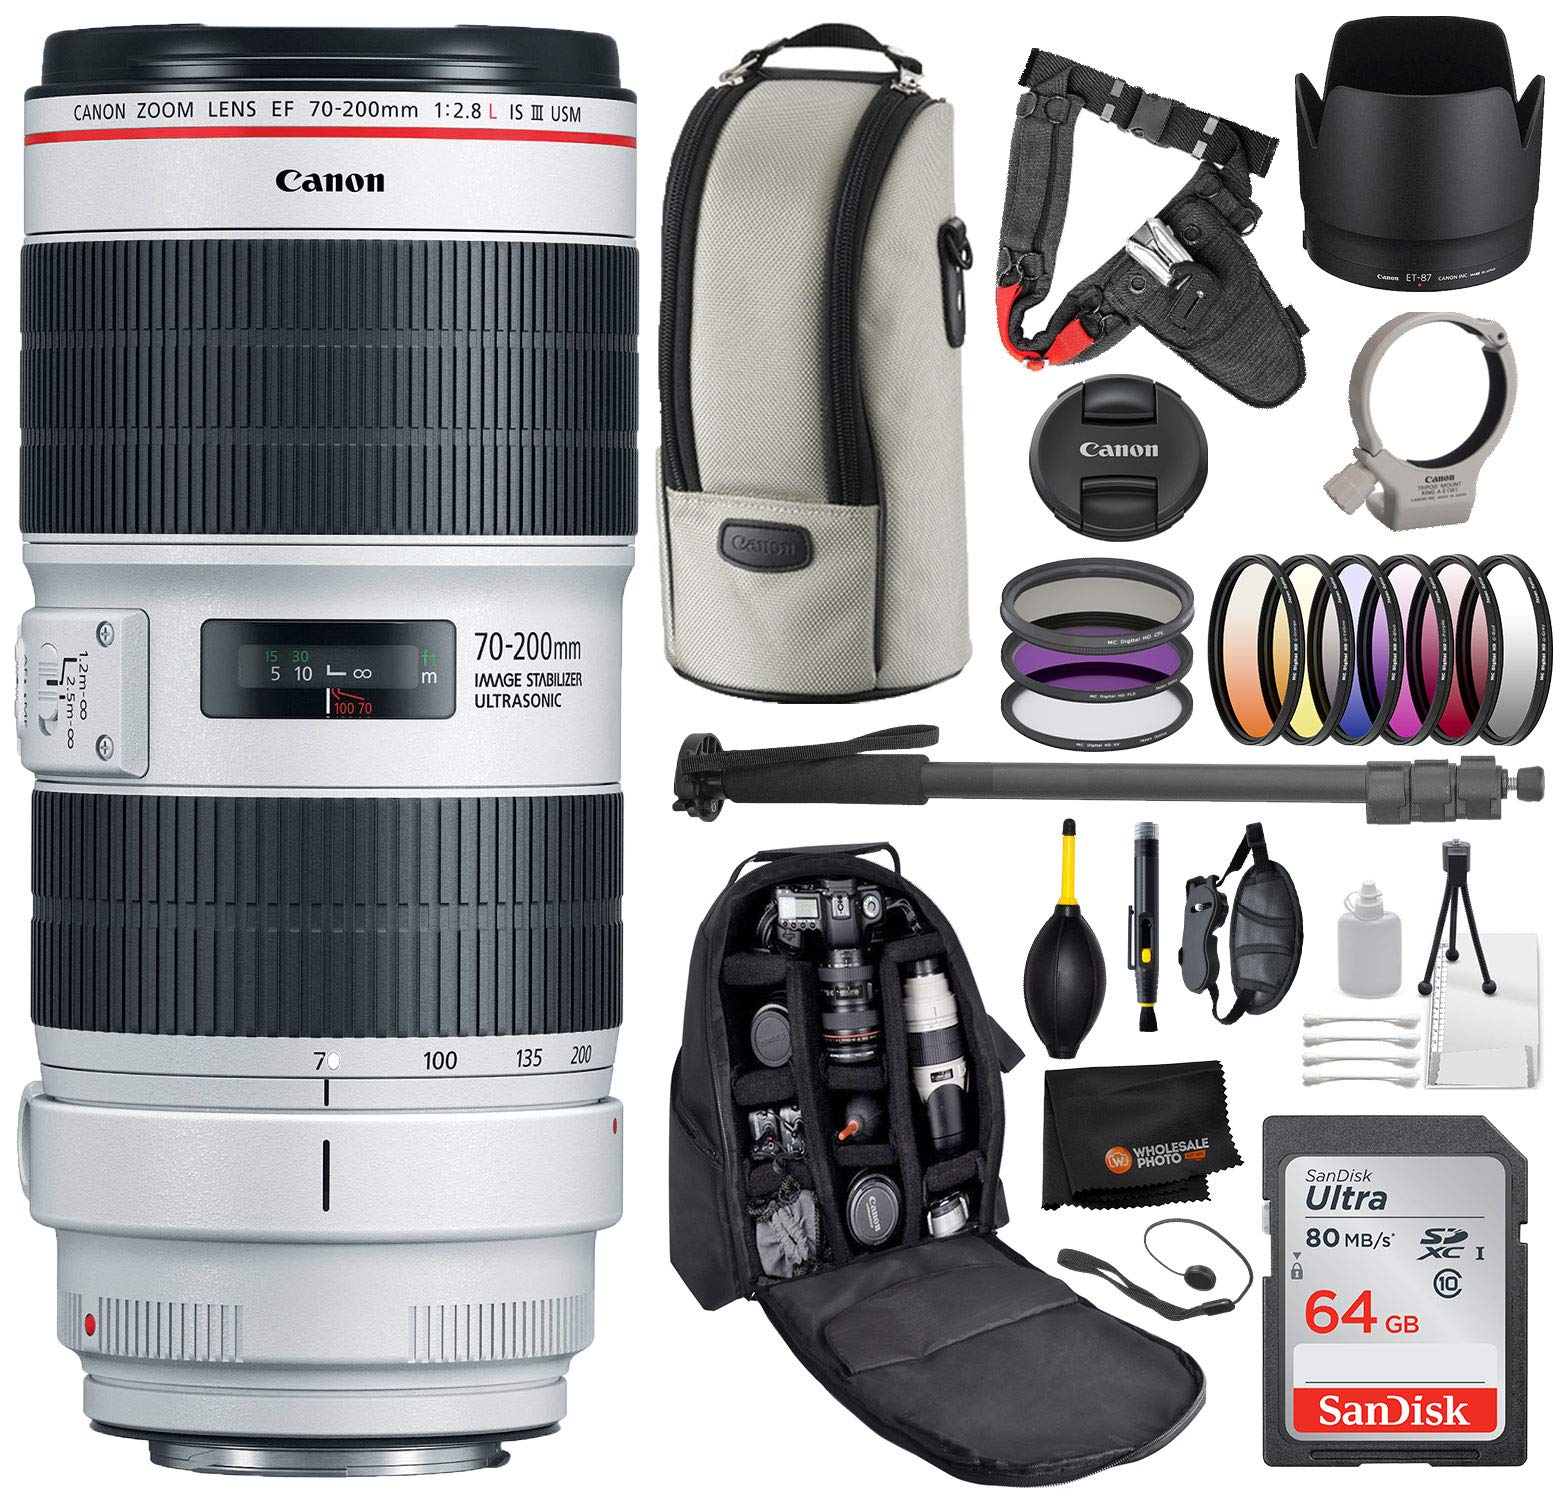 Canon EF 70-200mm f/2.8L is III USM Lens with Professional Bundle Package Deal Kit for EOS 7D Mark II, 6D Mark II, 5D Mark IV, 5D S R, 5D S, 5D Mark III, 80D, 70D, 77D, T5, T6, T6s, T7i by Canon